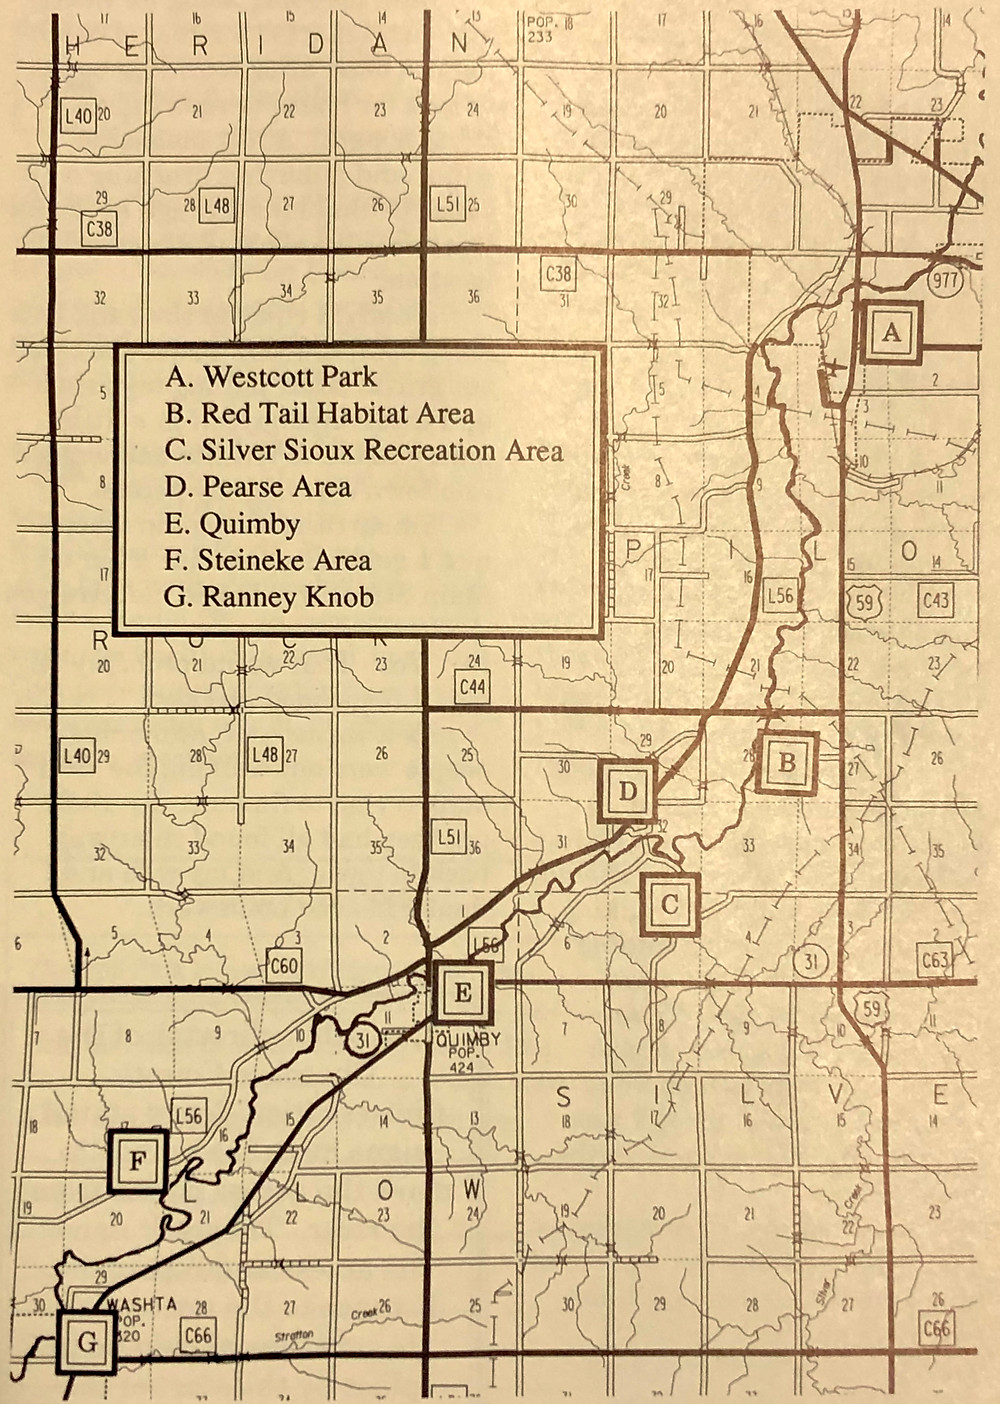 Map of the section of the Little Sioux River